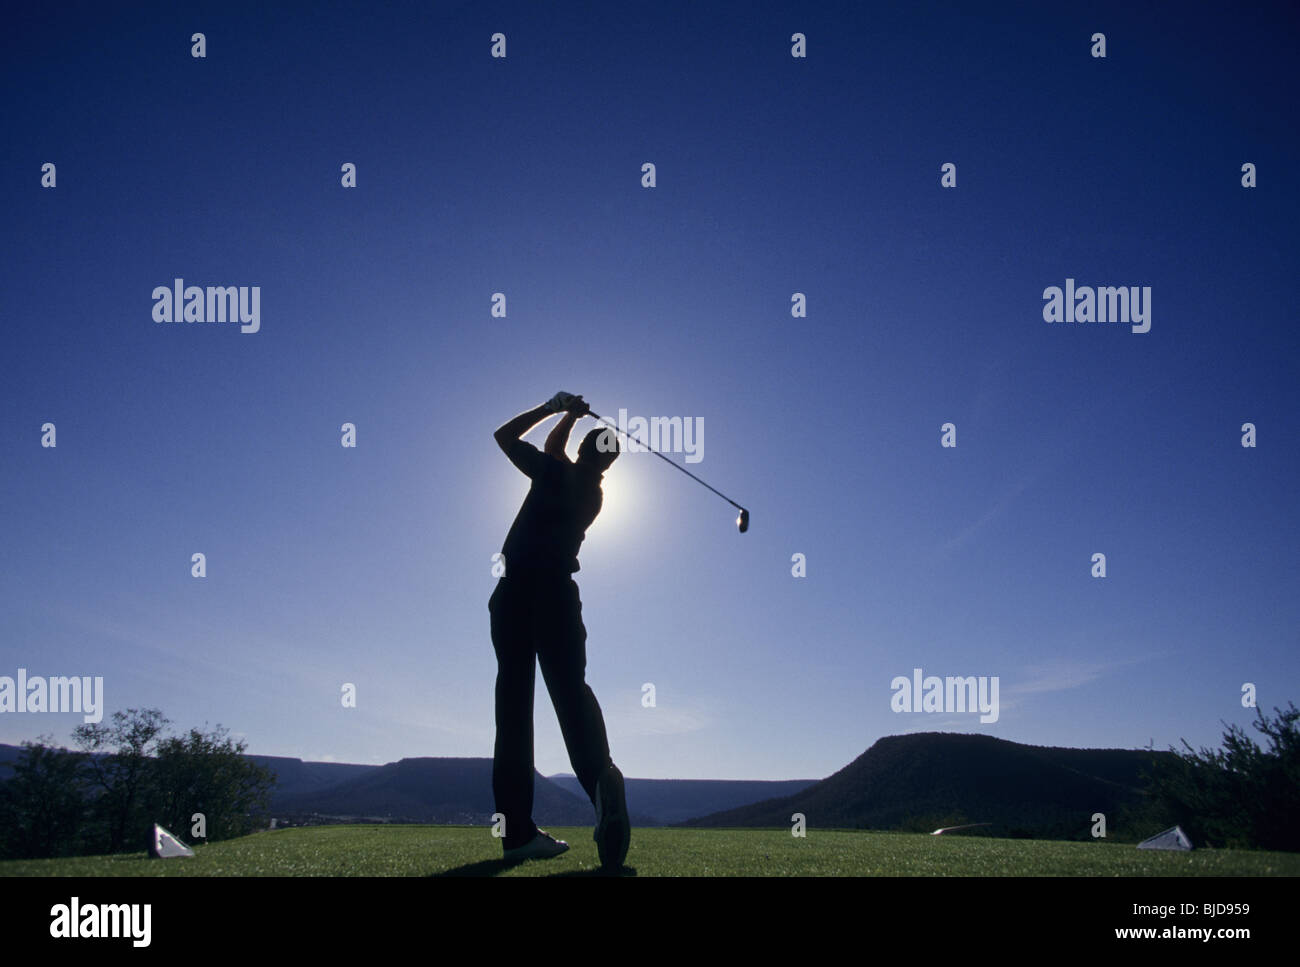 Silhouette of golfer teeing off on golf course - Stock Image